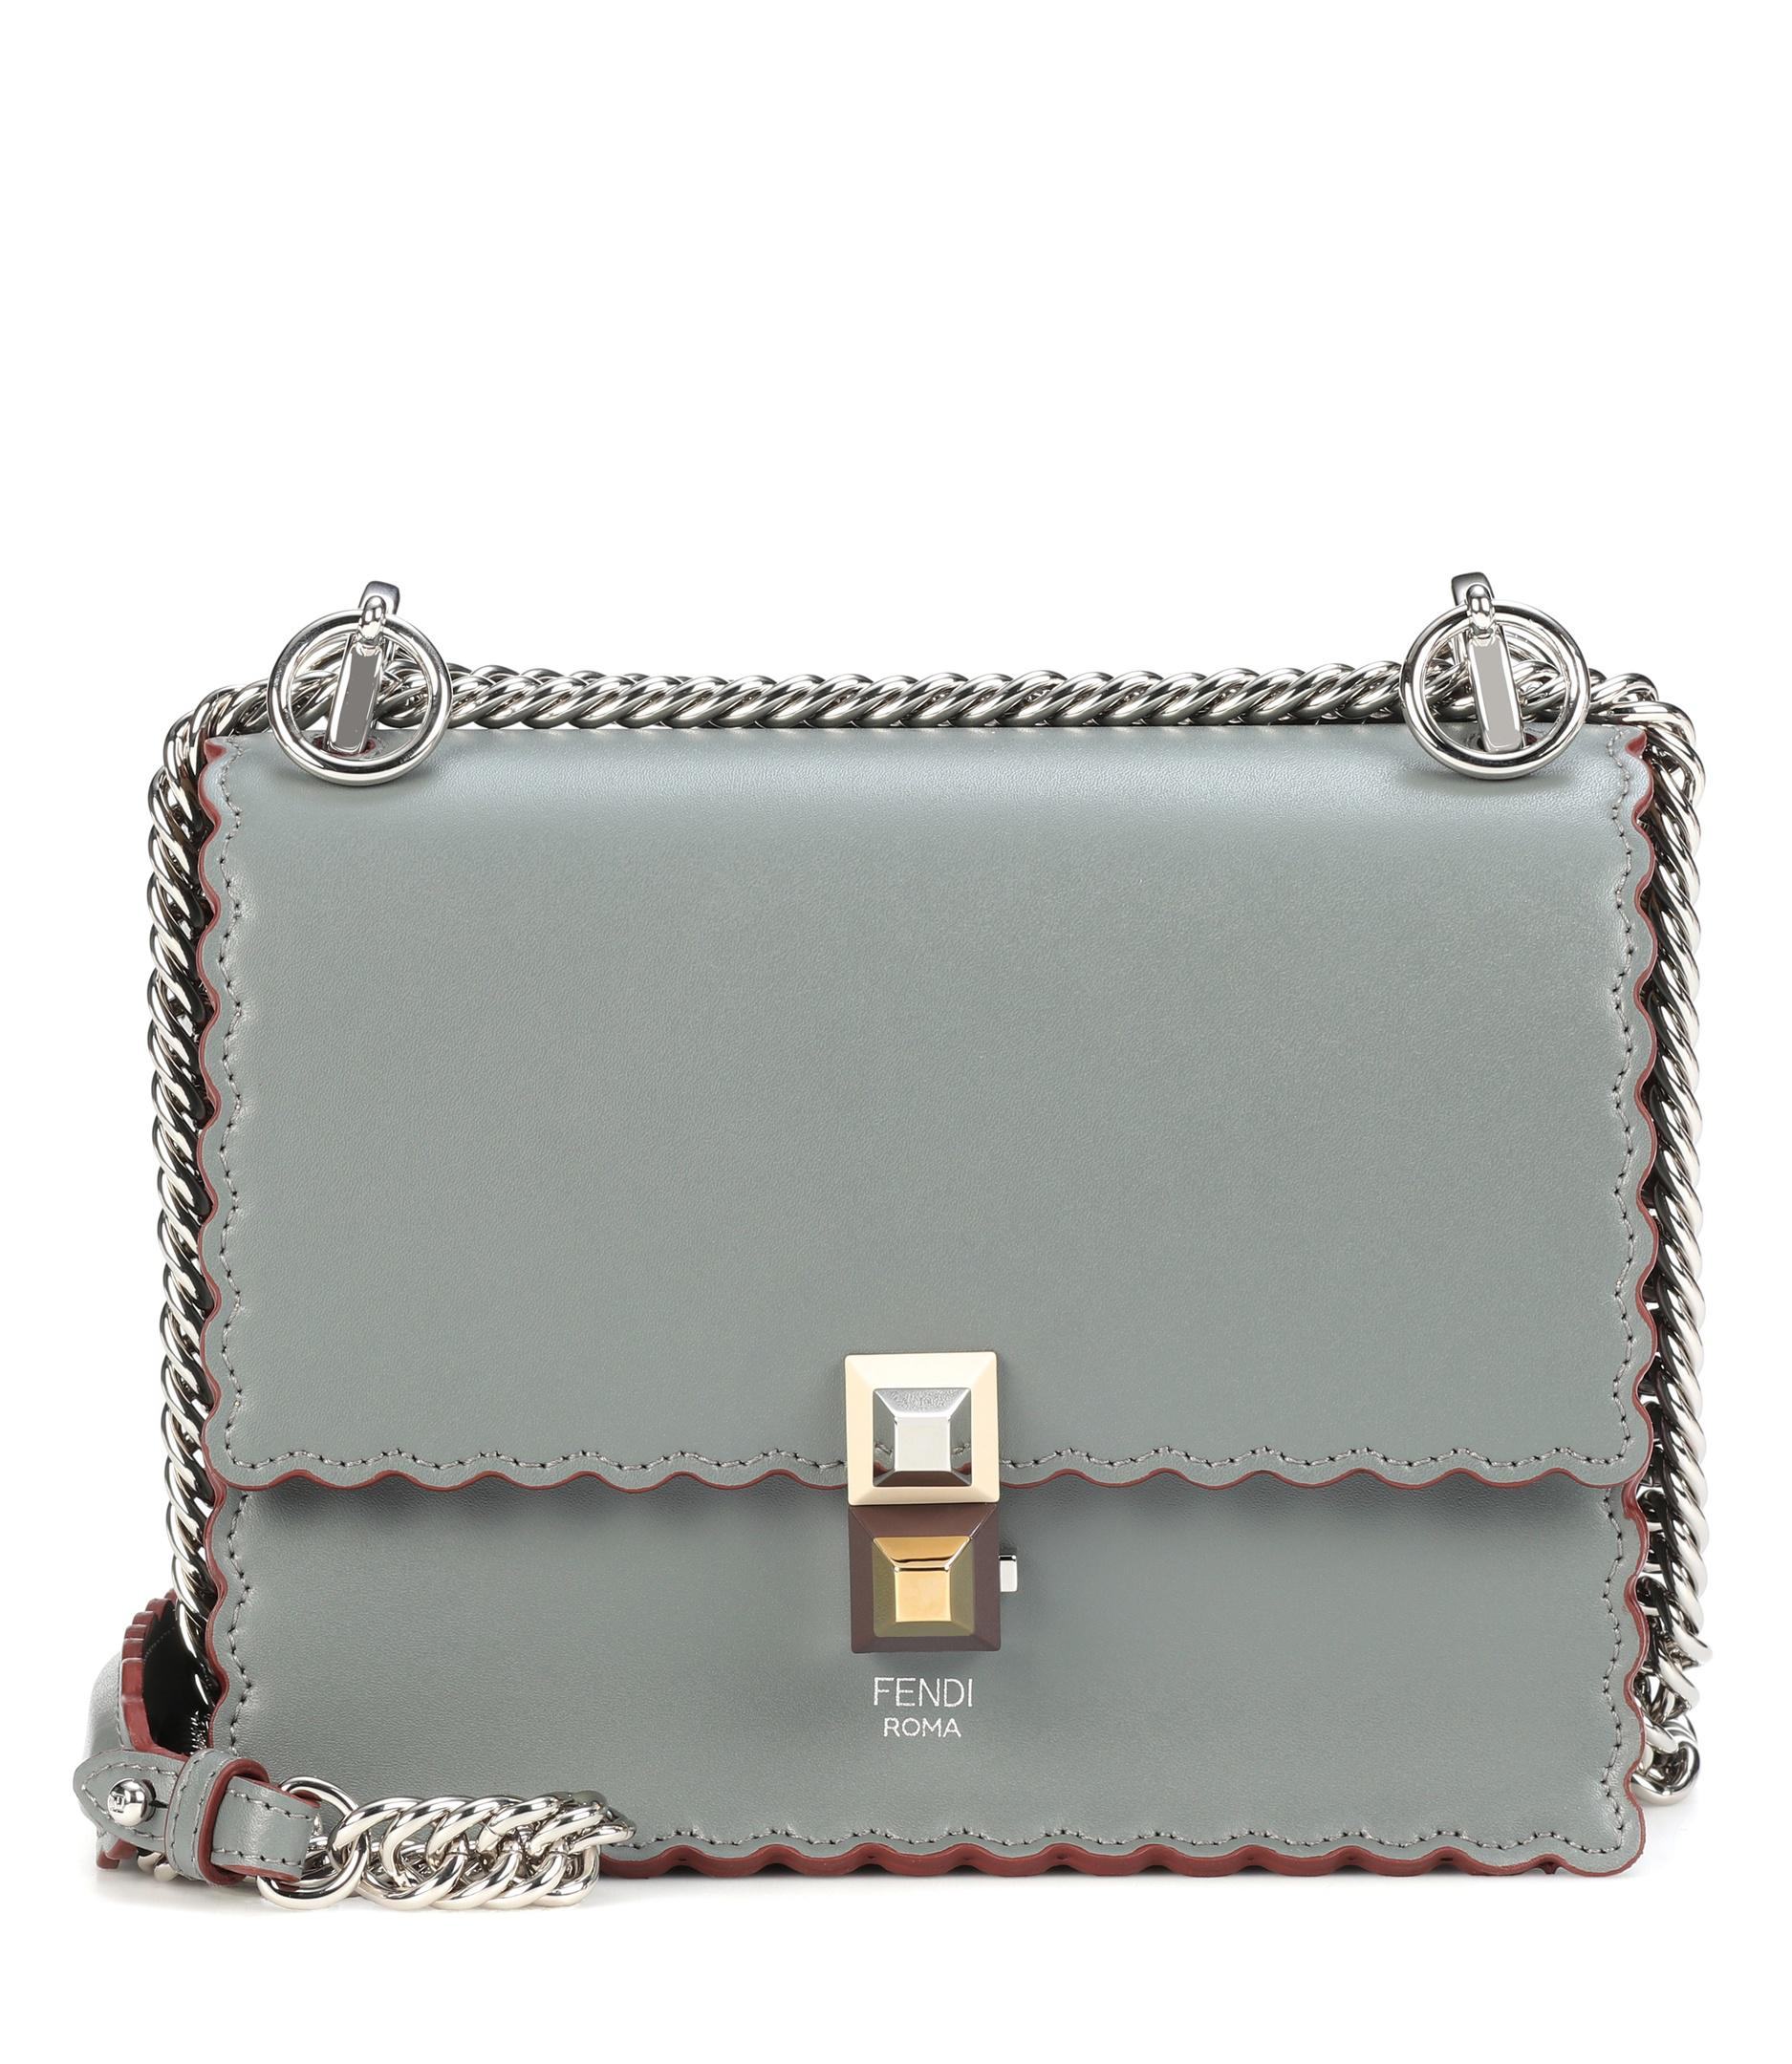 f3a4ce41c8fd Fendi Kan I Small Leather Shoulder Bag in Green - Lyst